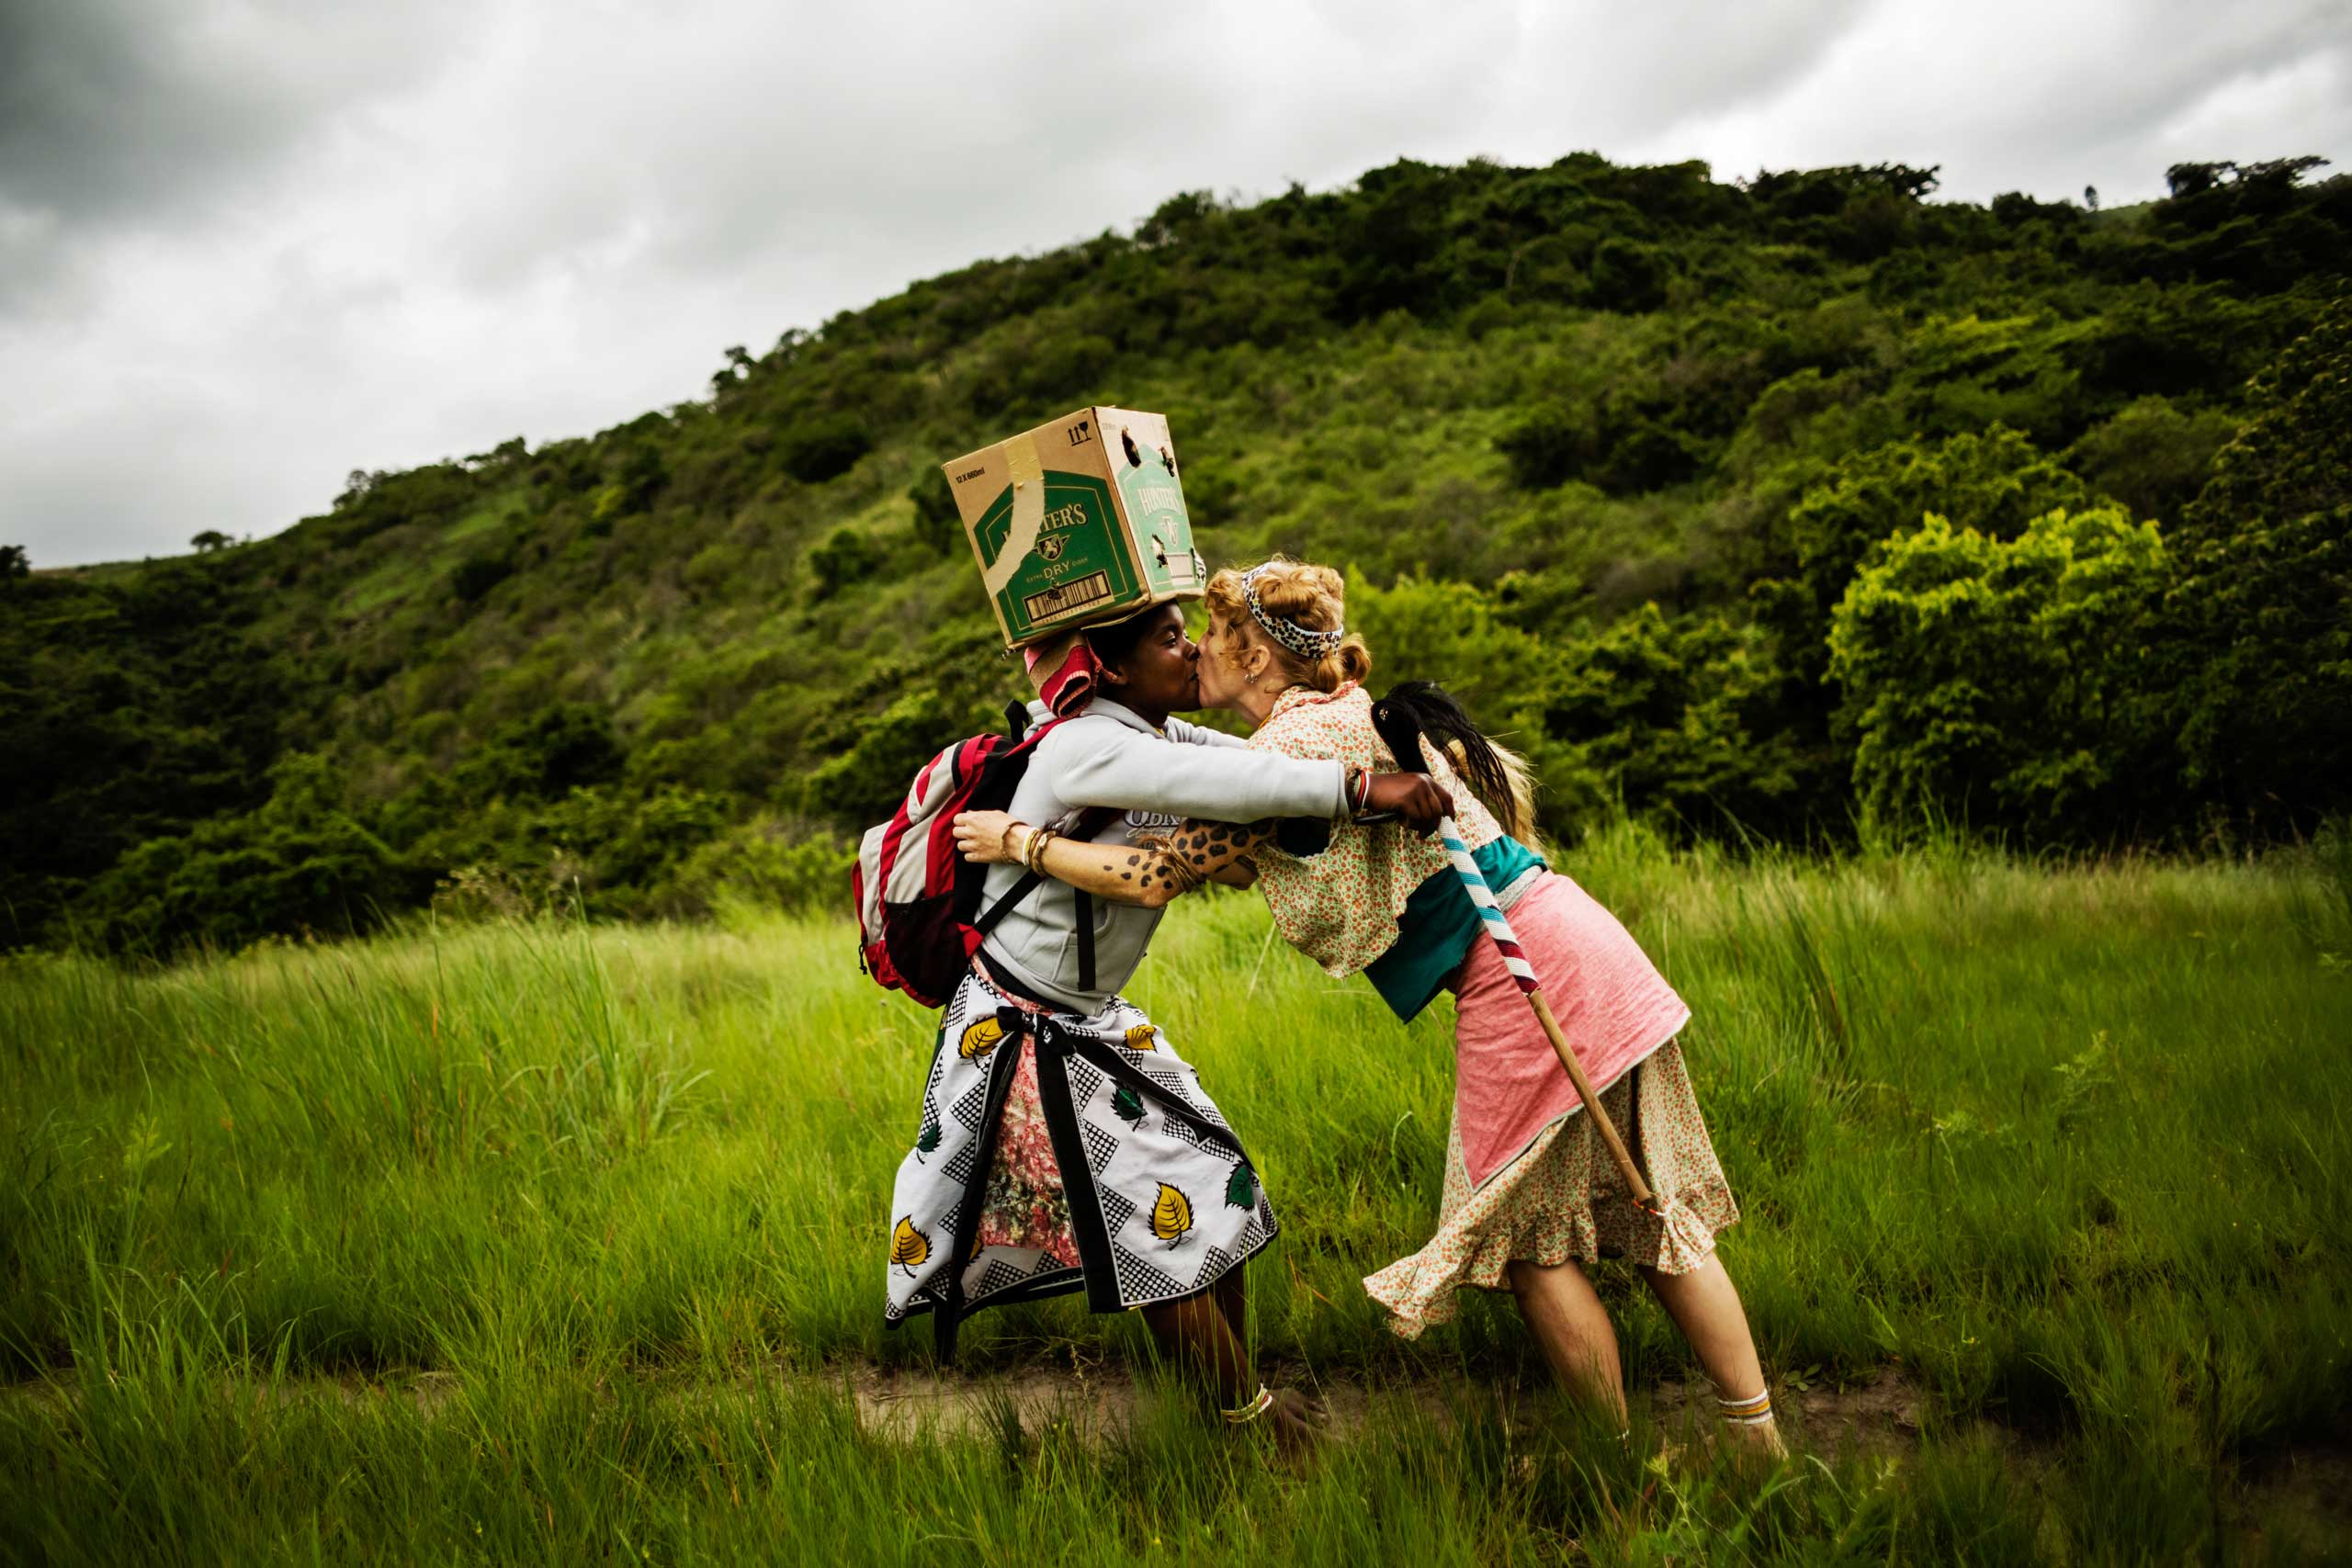 With a kiss Tyatyambo greets her spiritual sister sangoma Vumanithongo who carries a box of three chickens on her head on Nov. 20, 2014 in Mdakane, Lusikisiki District, South Africa.